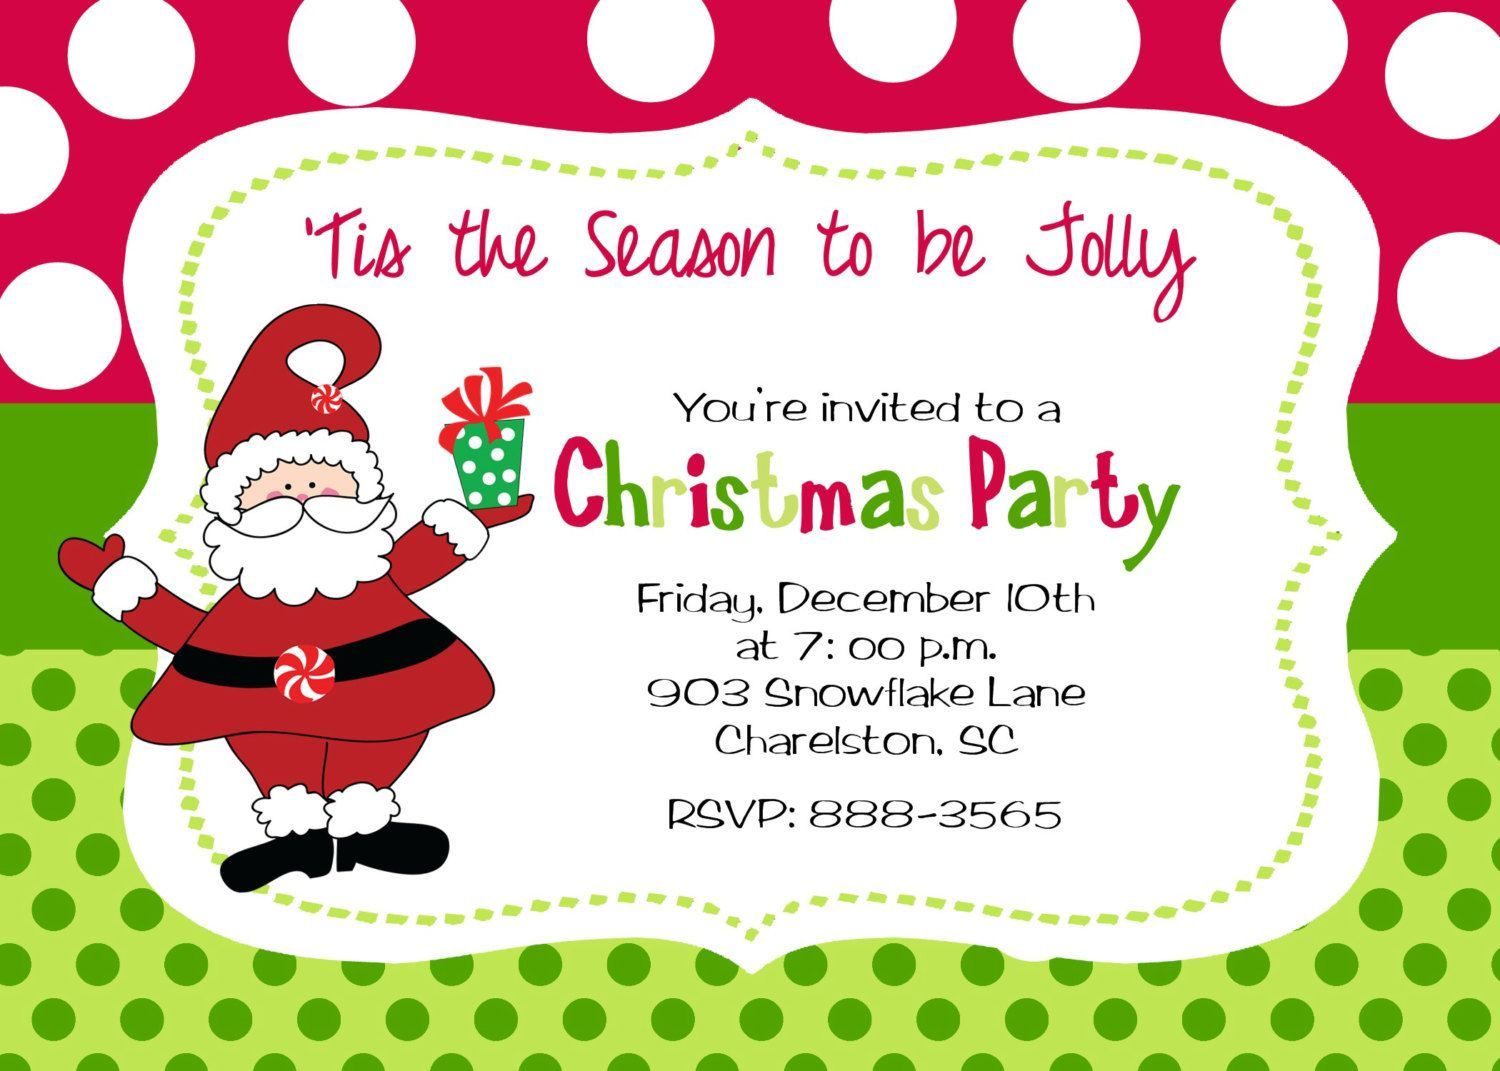 010 Awful Christma Party Invite Template Word High Resolution  Holiday Free Invitation Wording ExampleFull